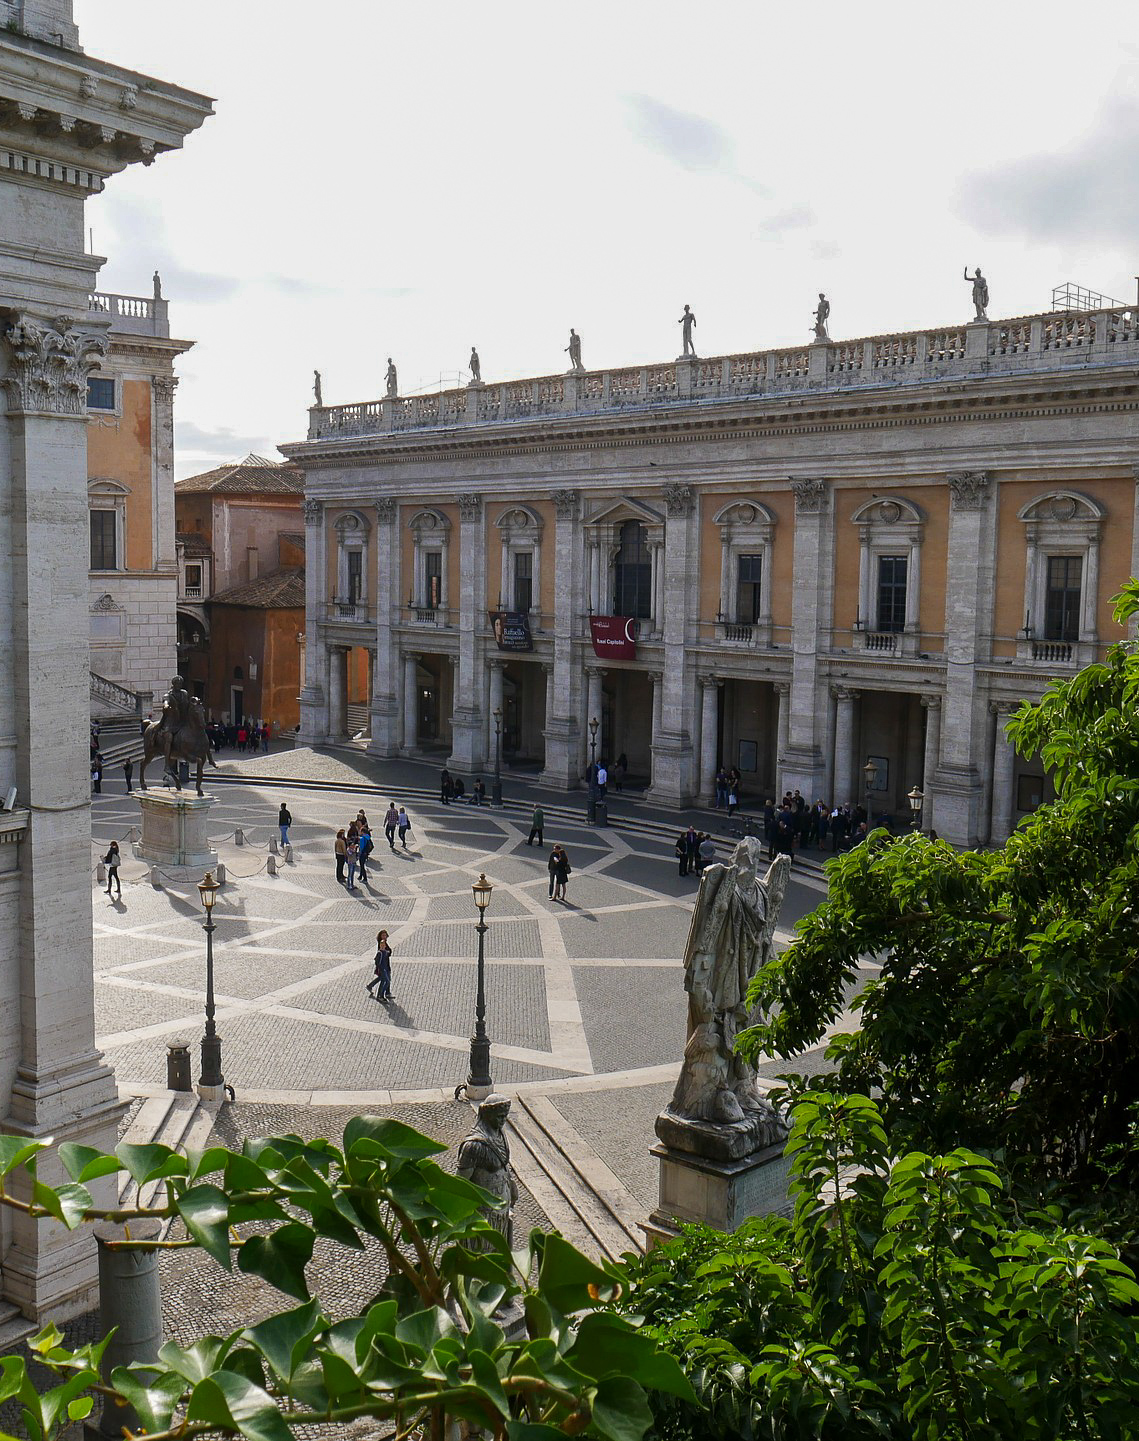 The Capitoline Museums in Rome, which are considered the first example of a modern museum